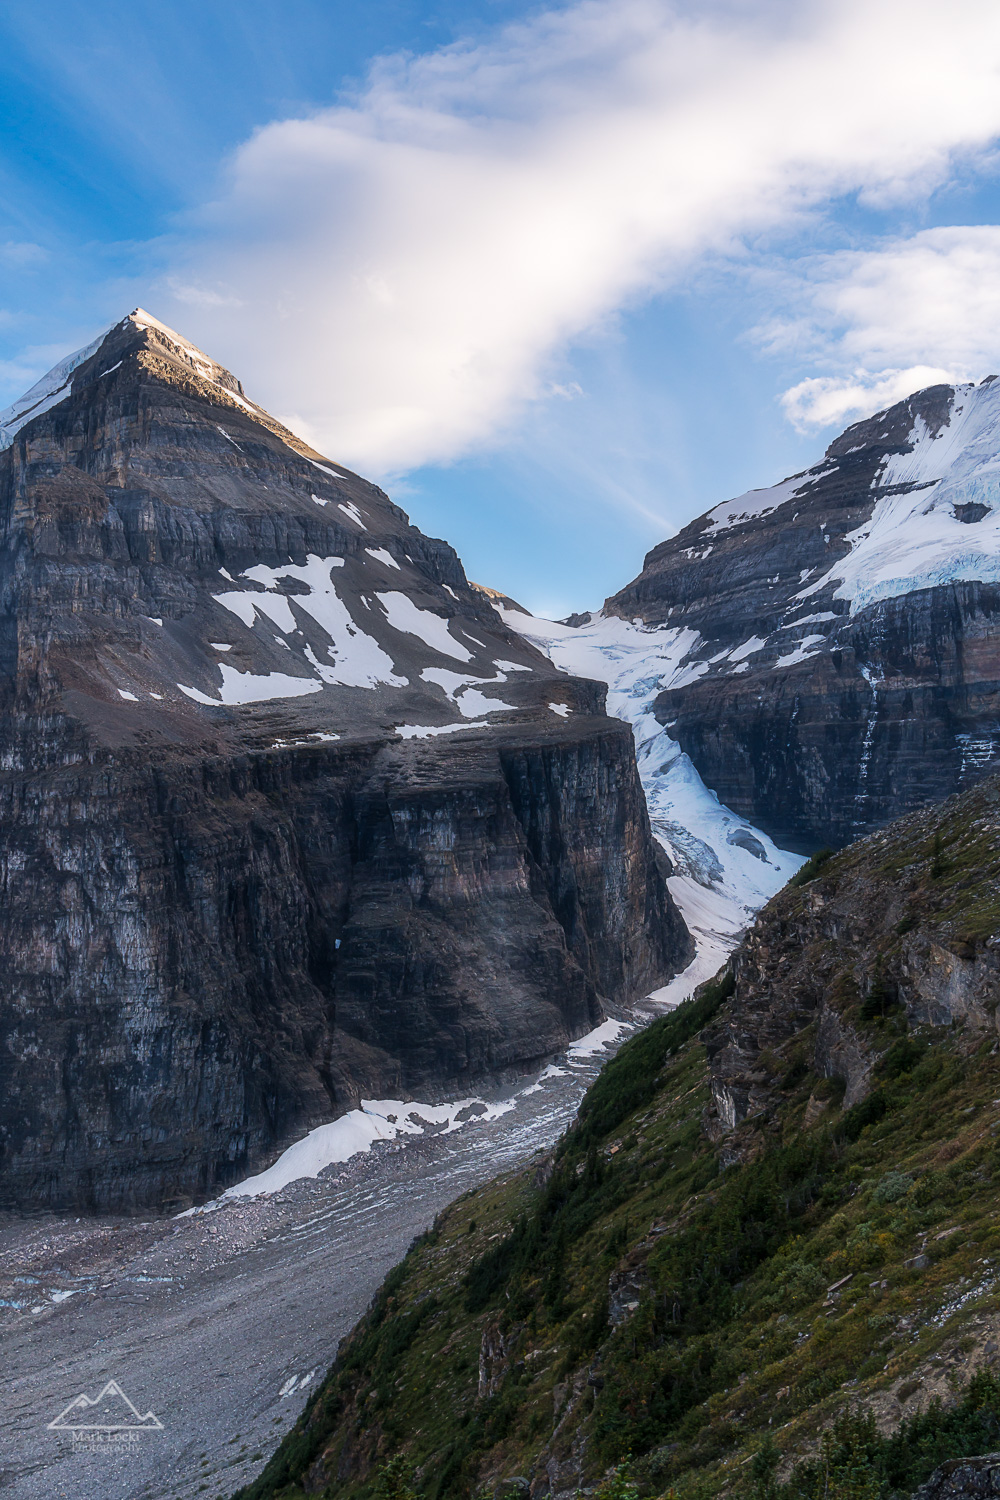 The Death Trap: Above the Plain of the Six Glaciers Trail in Lake Louise area the Death Trap comes into view. This treacherous route to Abbott Pass is rarely used anymore, as most mountaineers find the objective hazard just a bit too high. It sure makes a pretty picture though!